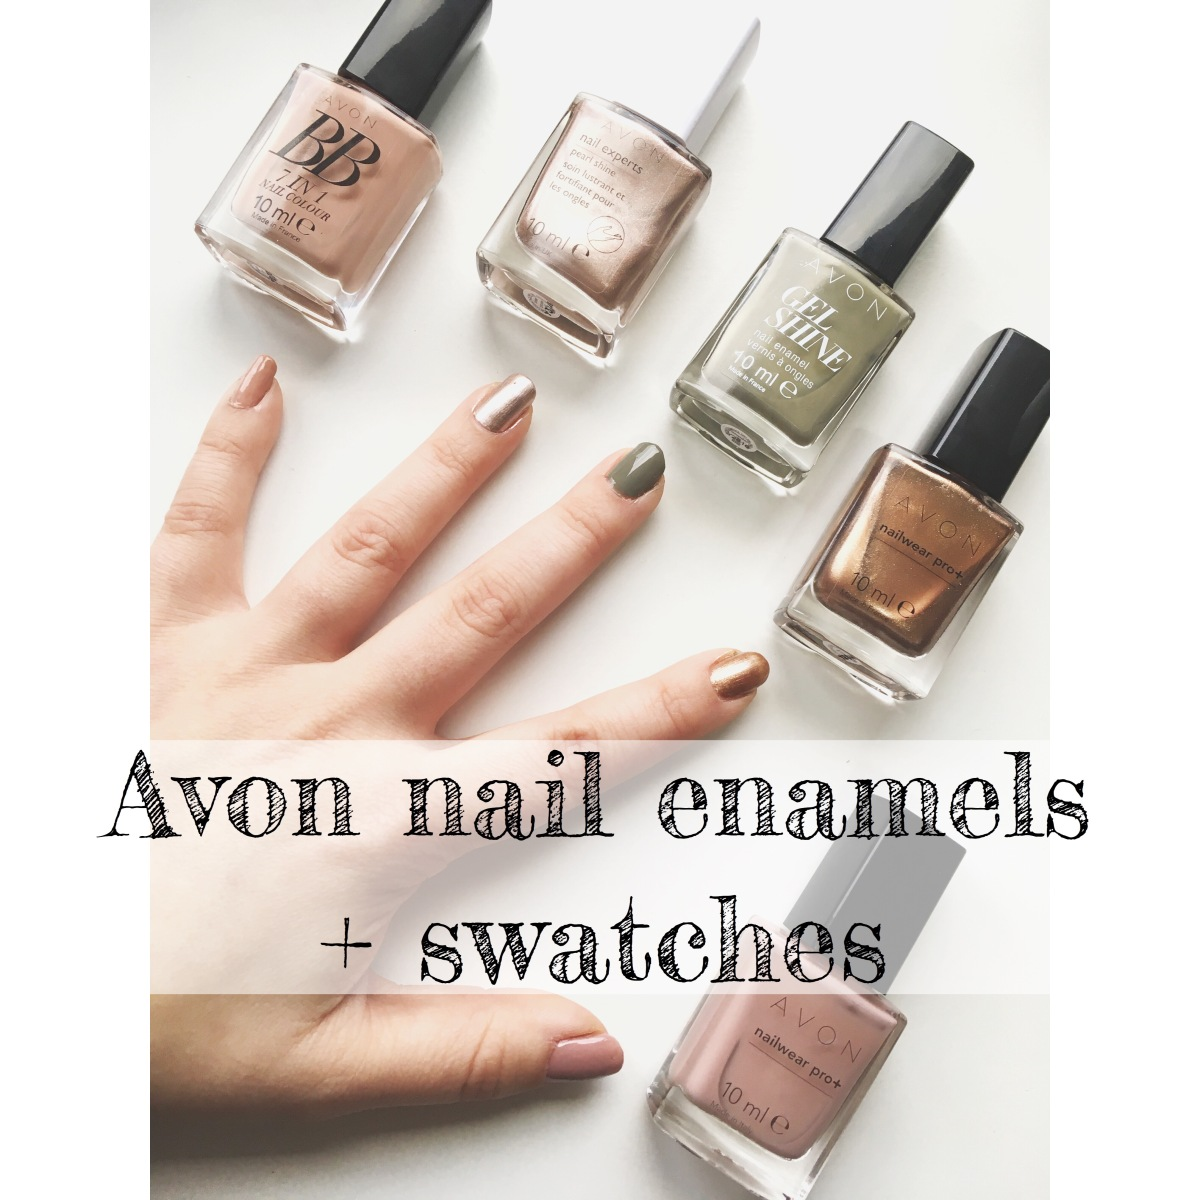 Avon nail enamel - NailWear Pro+ / Gel Shine / Liquid freeze dry nail spray and more! (plus swatches)